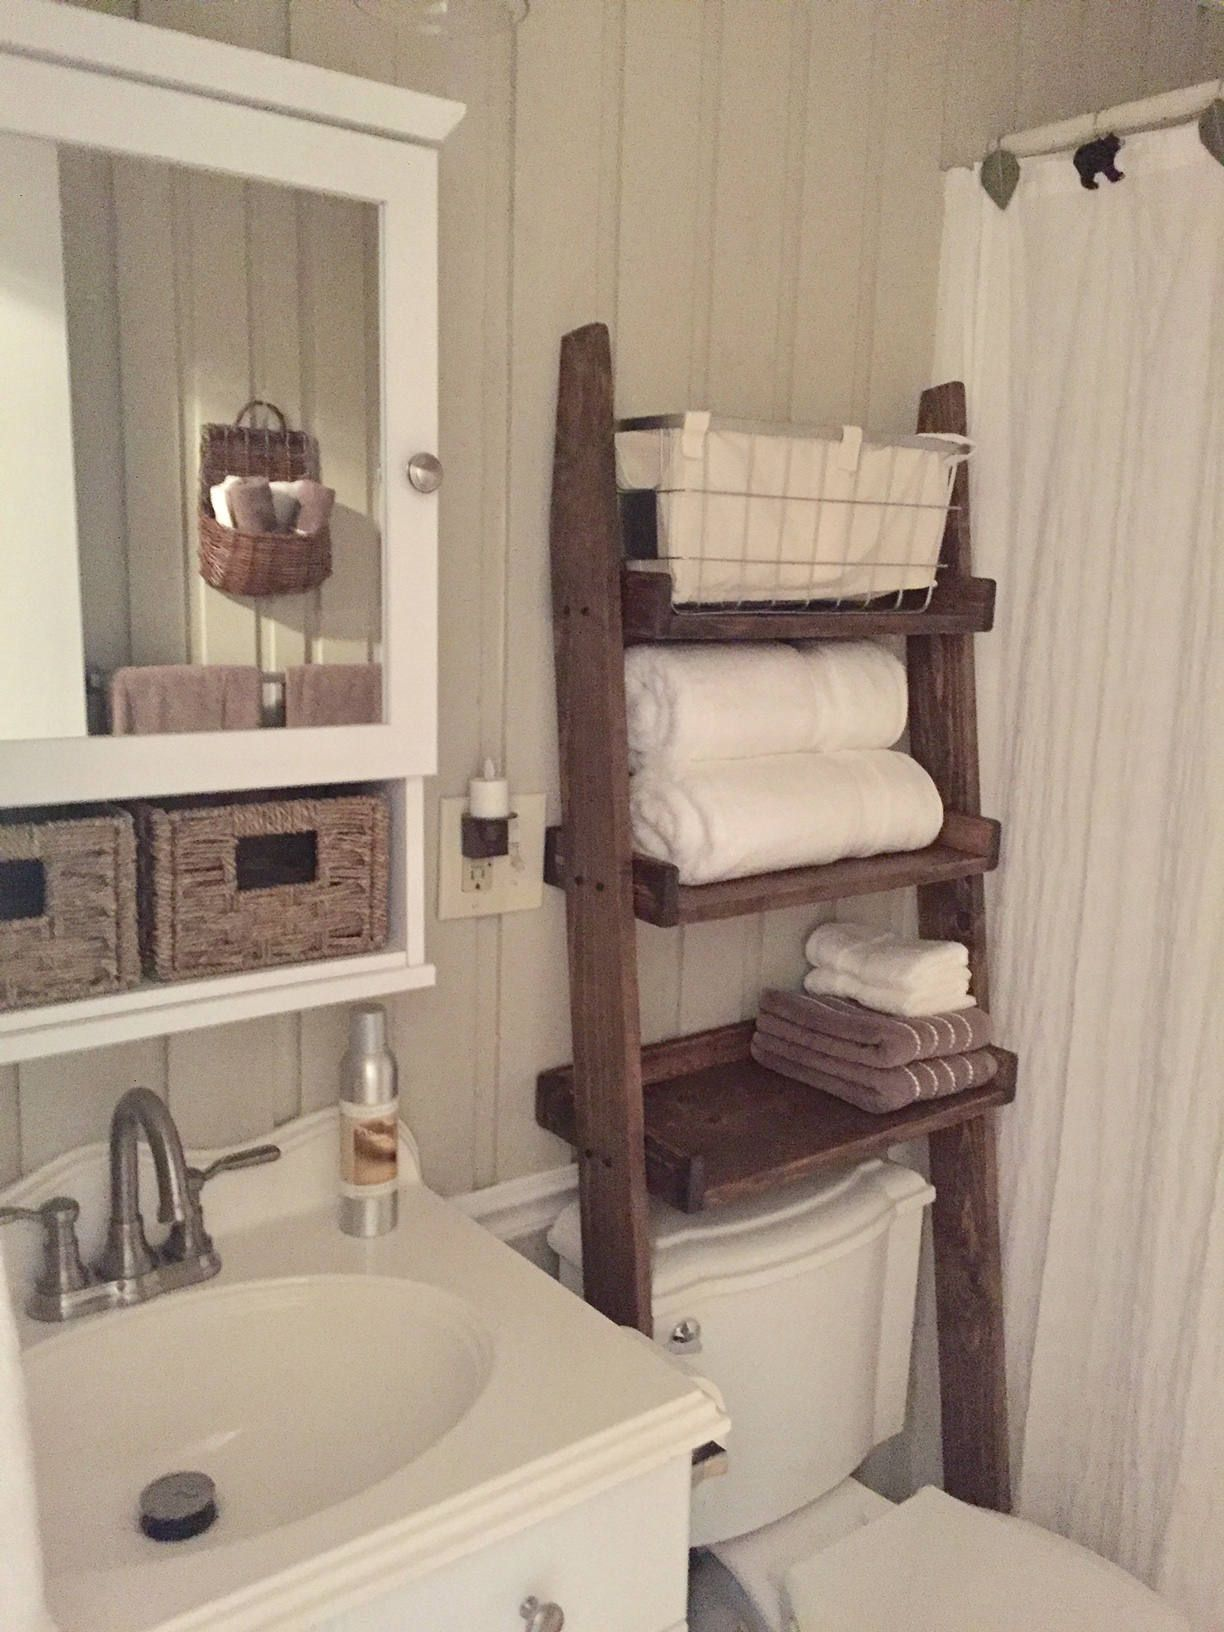 Bad Holzregal Over The Toilet Leaning Ladder Shelf Made To Order Decor